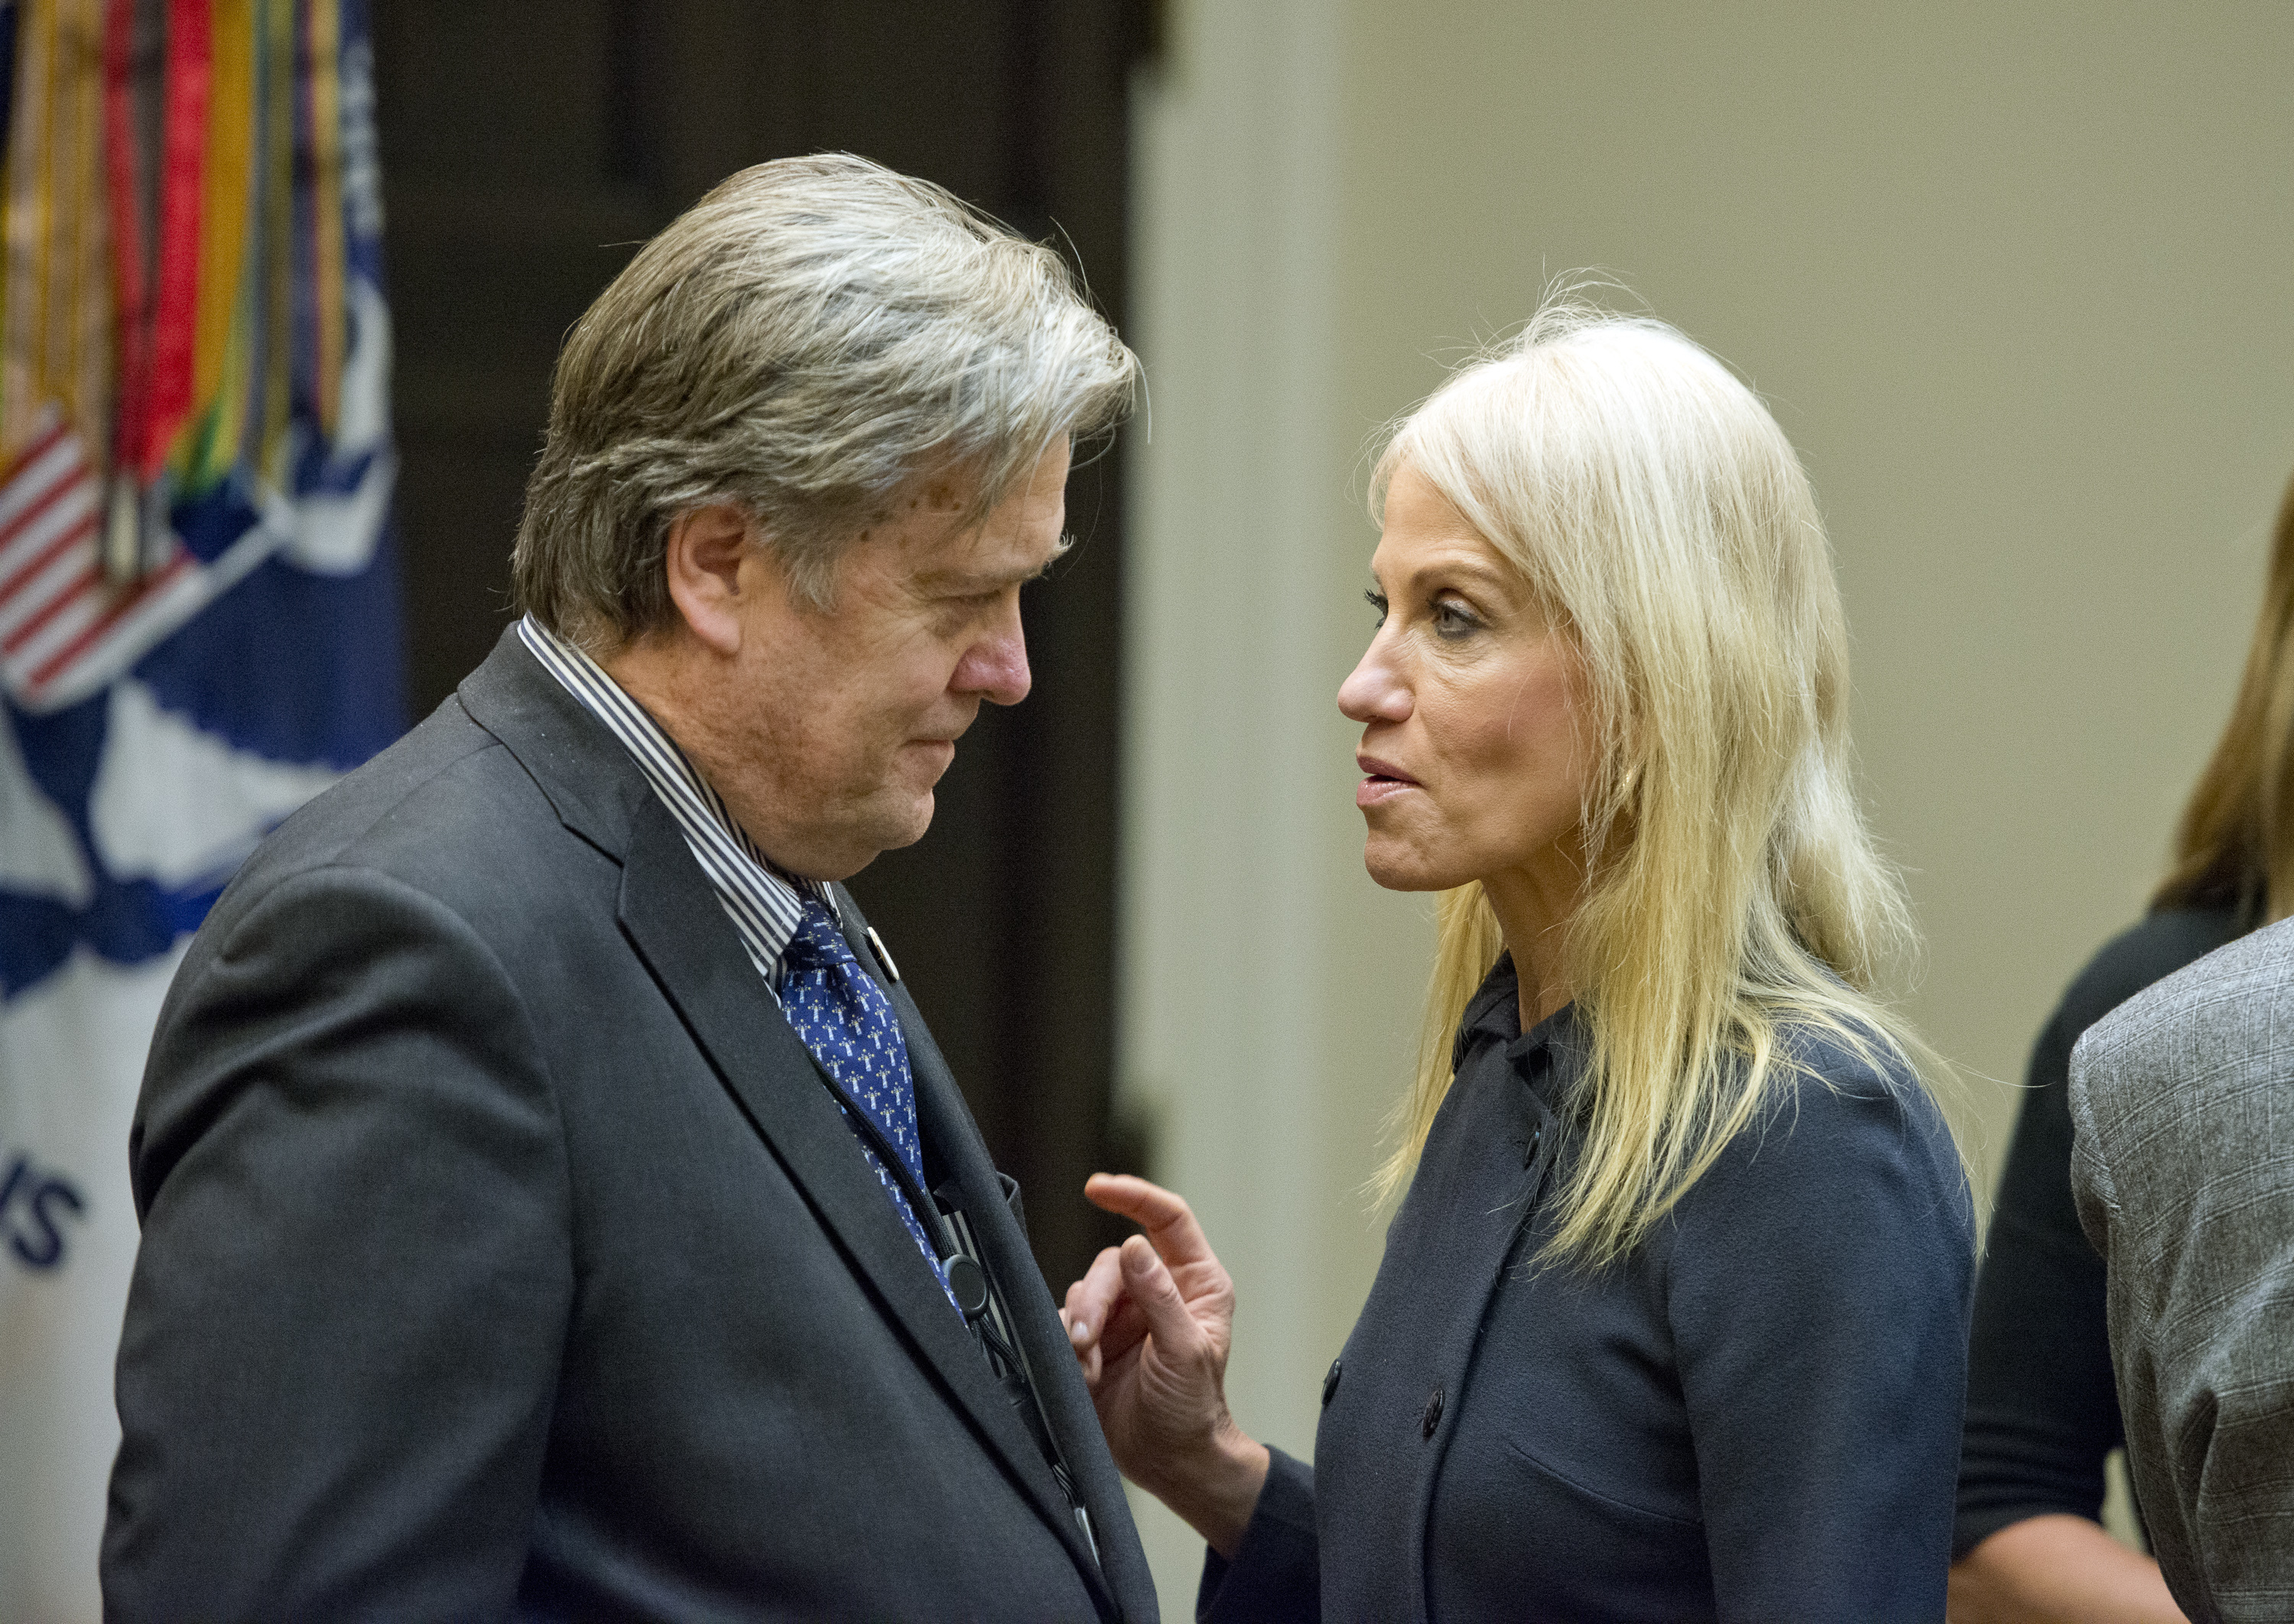 Assistant to the President and Chief Strategist Steve Bannon, left and Counselor to the President Kellyanne Conway, right, have a conversation prior to the arrival of US President Donald Trump who will hold a listening session with cyber security experts in the in the Roosevelt Room of the White House in Washington, DC on Tuesday, January 31, 2017. Credit: Ron Sachs / Pool via CNP *** Please Use Credit from Credit Field ***